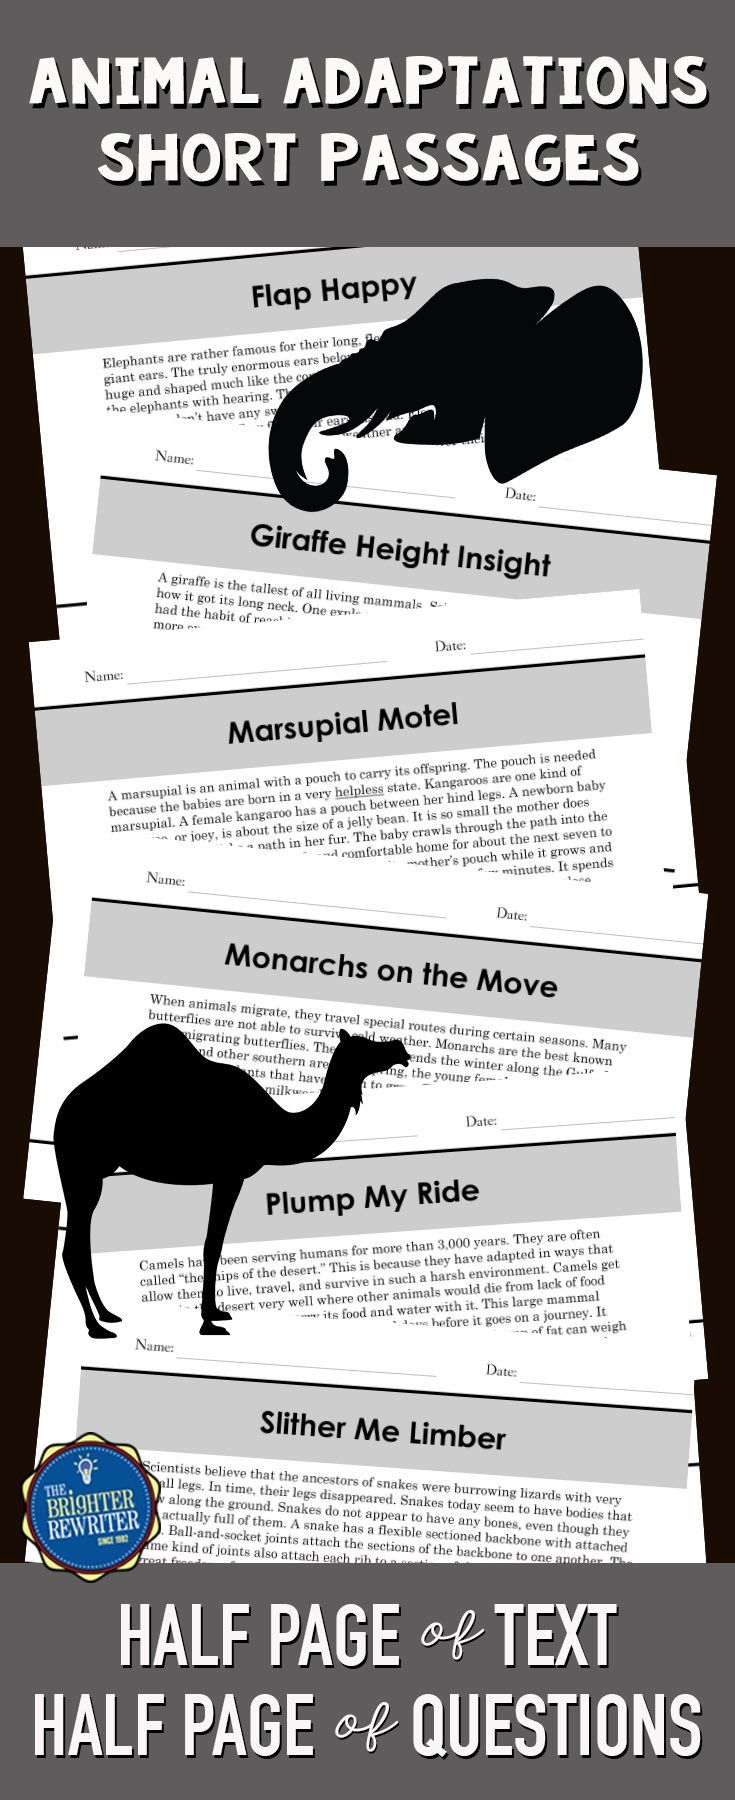 6 nonfiction mini-passages with informational text about animal adaptations and 4 multiple-choice comprehension questions on one page. The questions include a variety of reading skills and are modeled after the types of questions on standardized reading tests. Great for integrating science and reading!